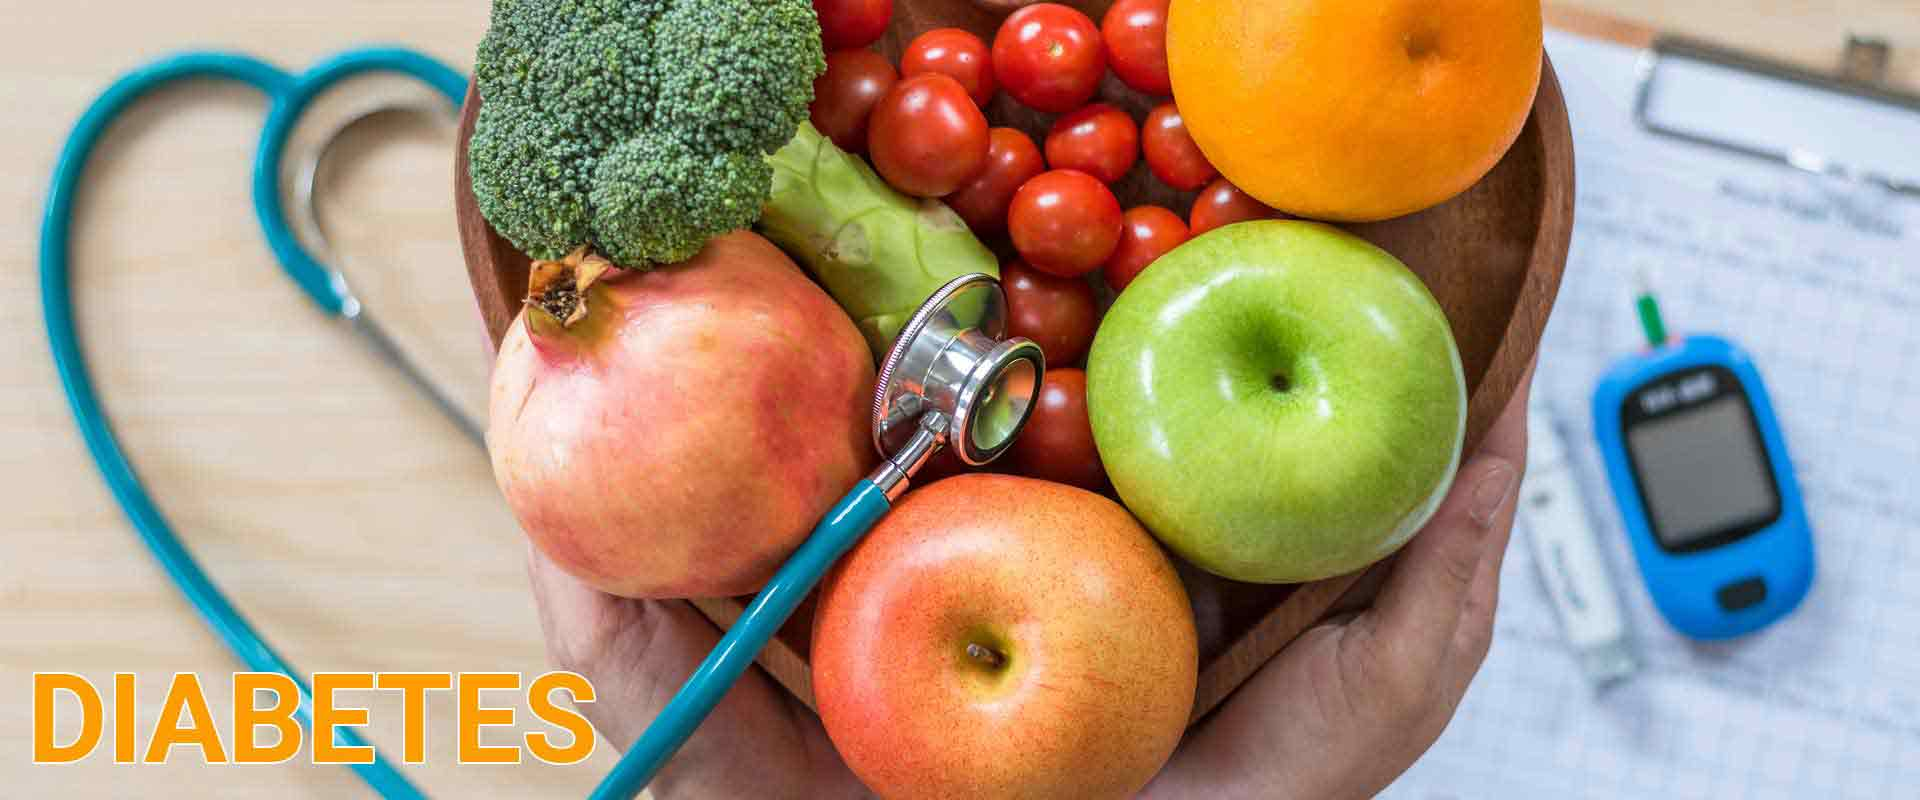 Diet For Diabetes In Greater Napanee